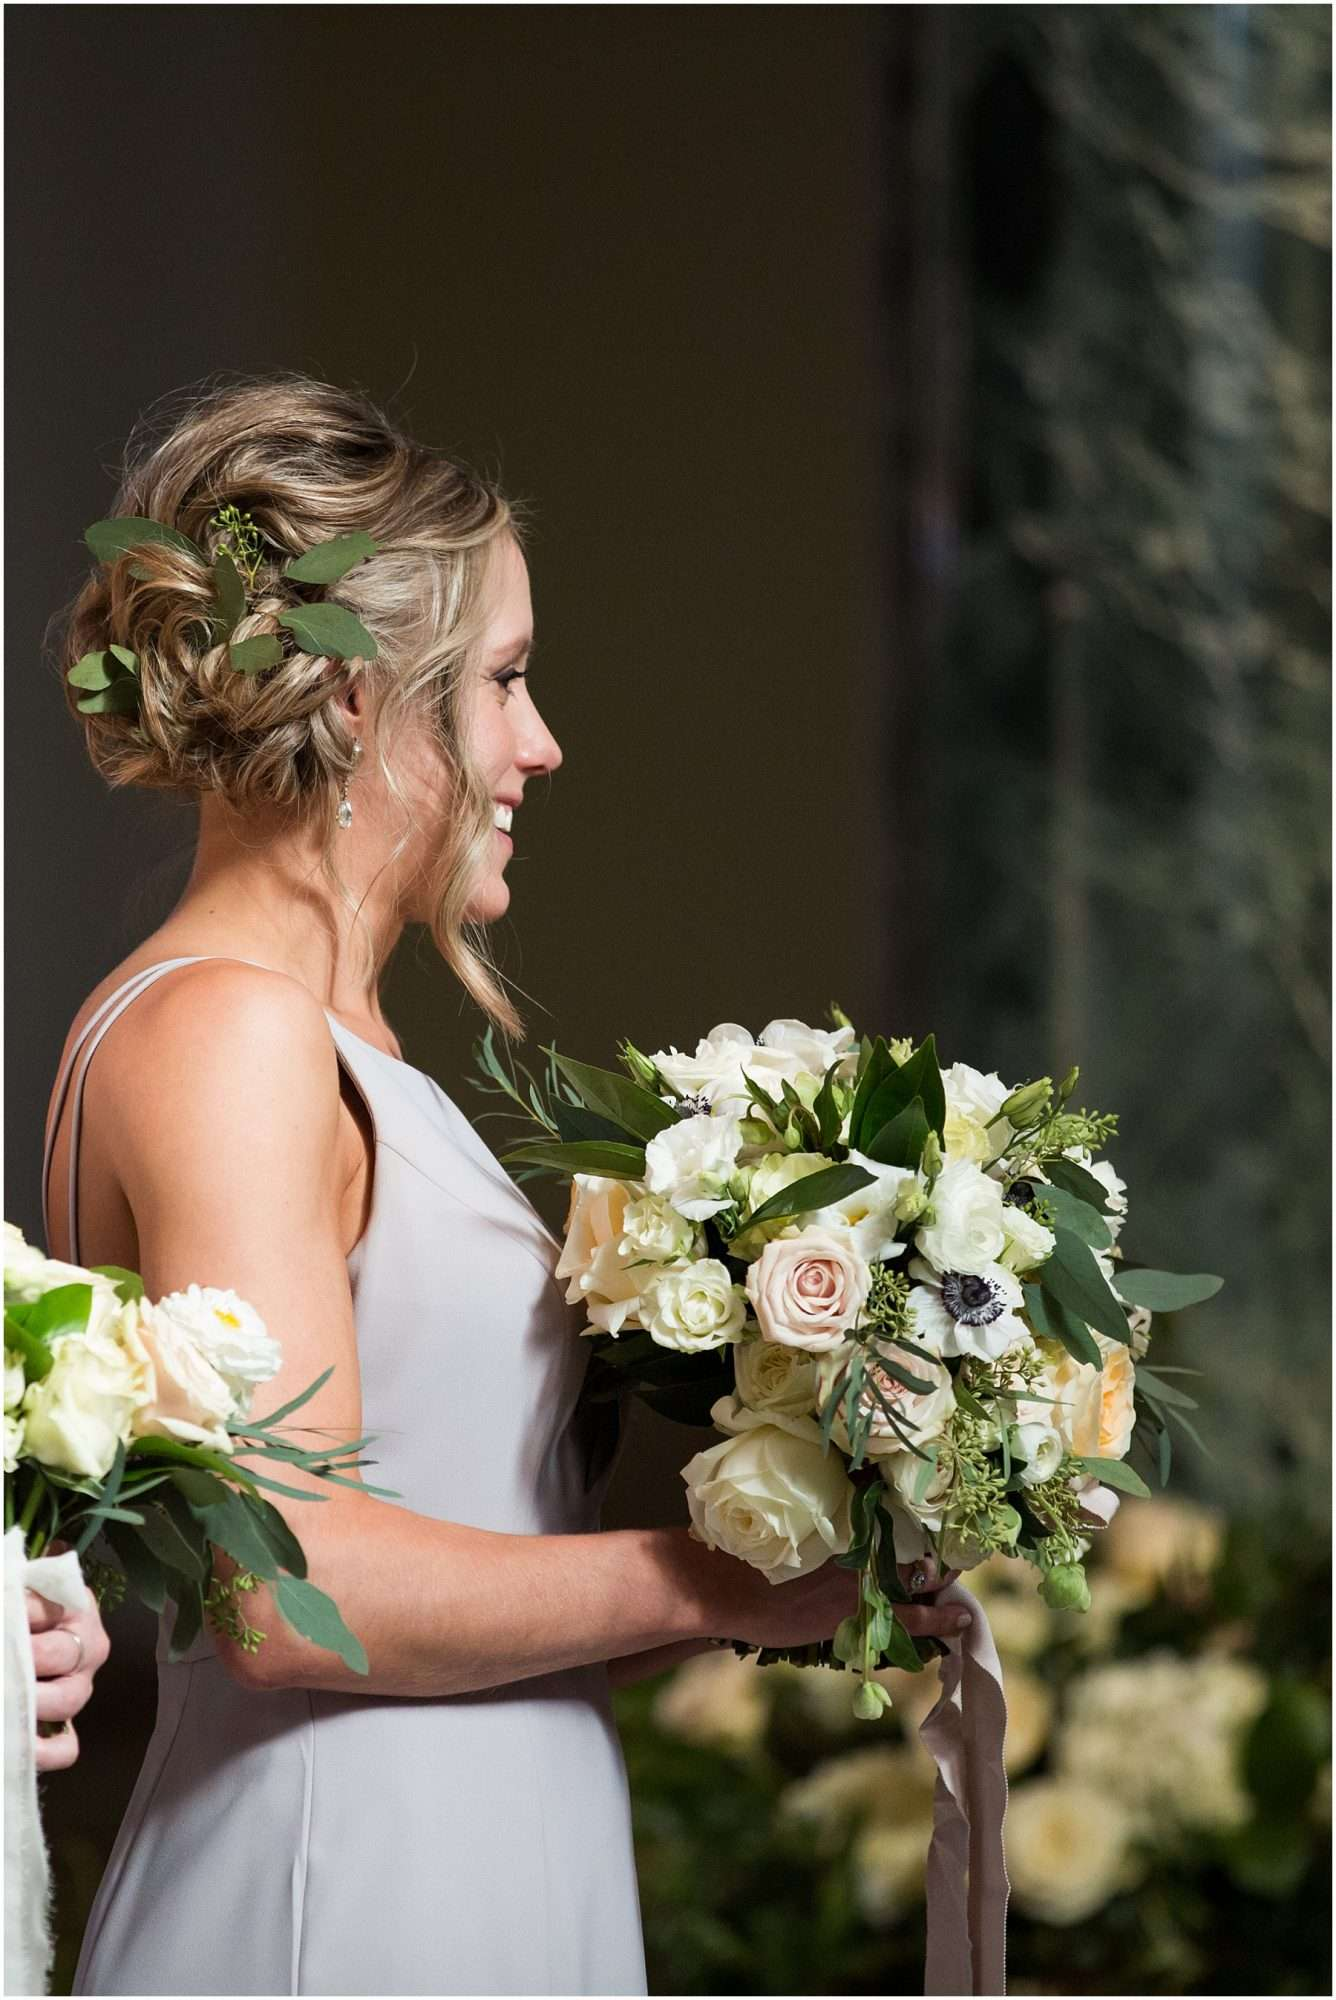 Wedding at the Ohio Statehouse | Columbus Ohio Weddings 104